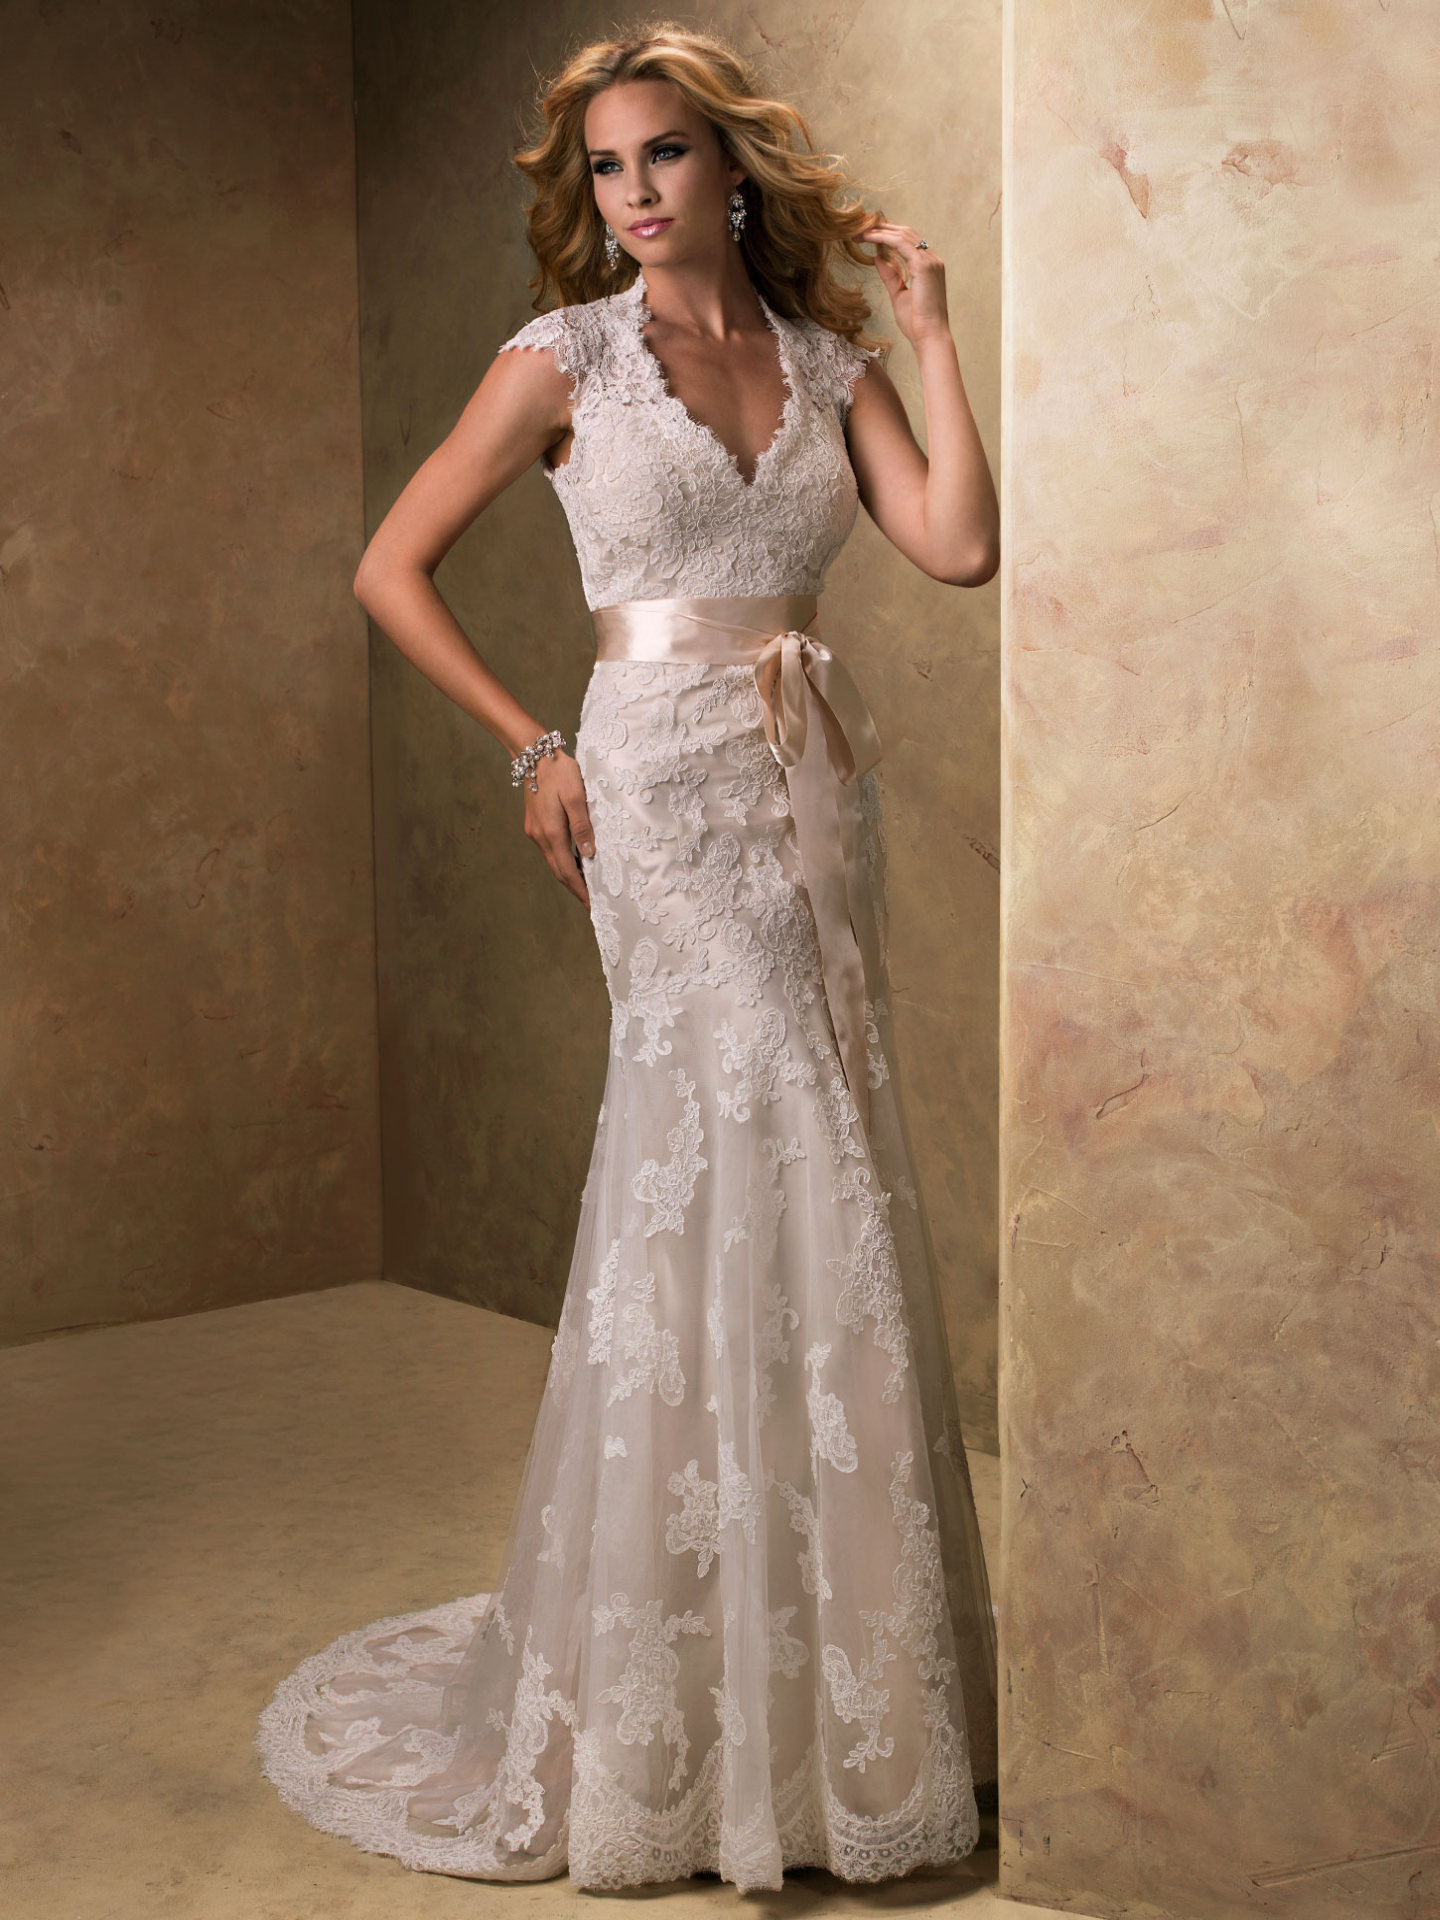 Keyhole Wedding Dresses Bronwyn By Maggie Sottero: Key Hole Wedding Dress At Reisefeber.org